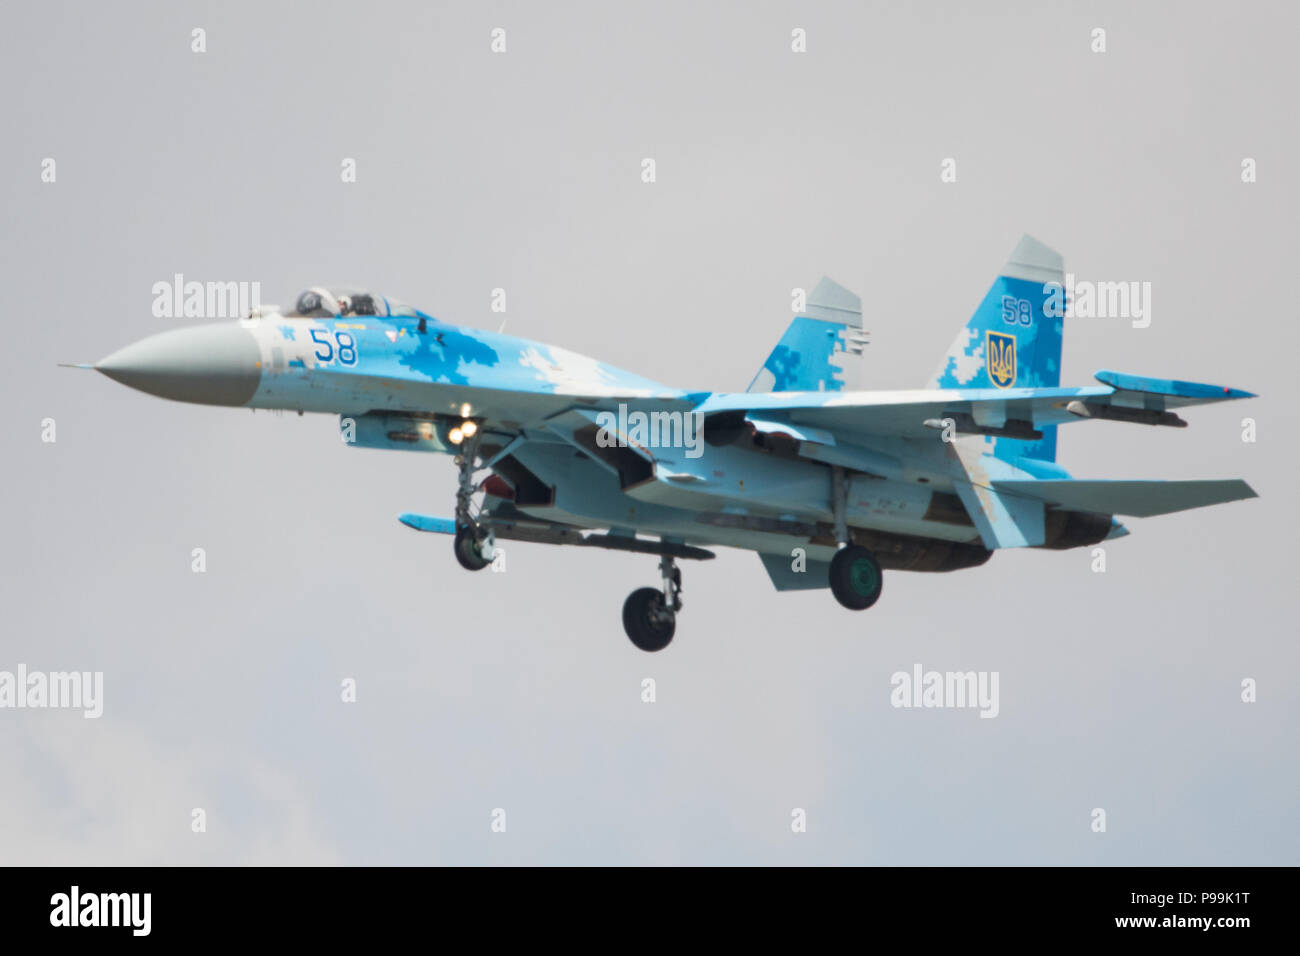 Sukhoi su-27P Flanker of the Ukranian Air Force at The Royal International Air Tattoo at RAF Fairford, England. - Stock Image